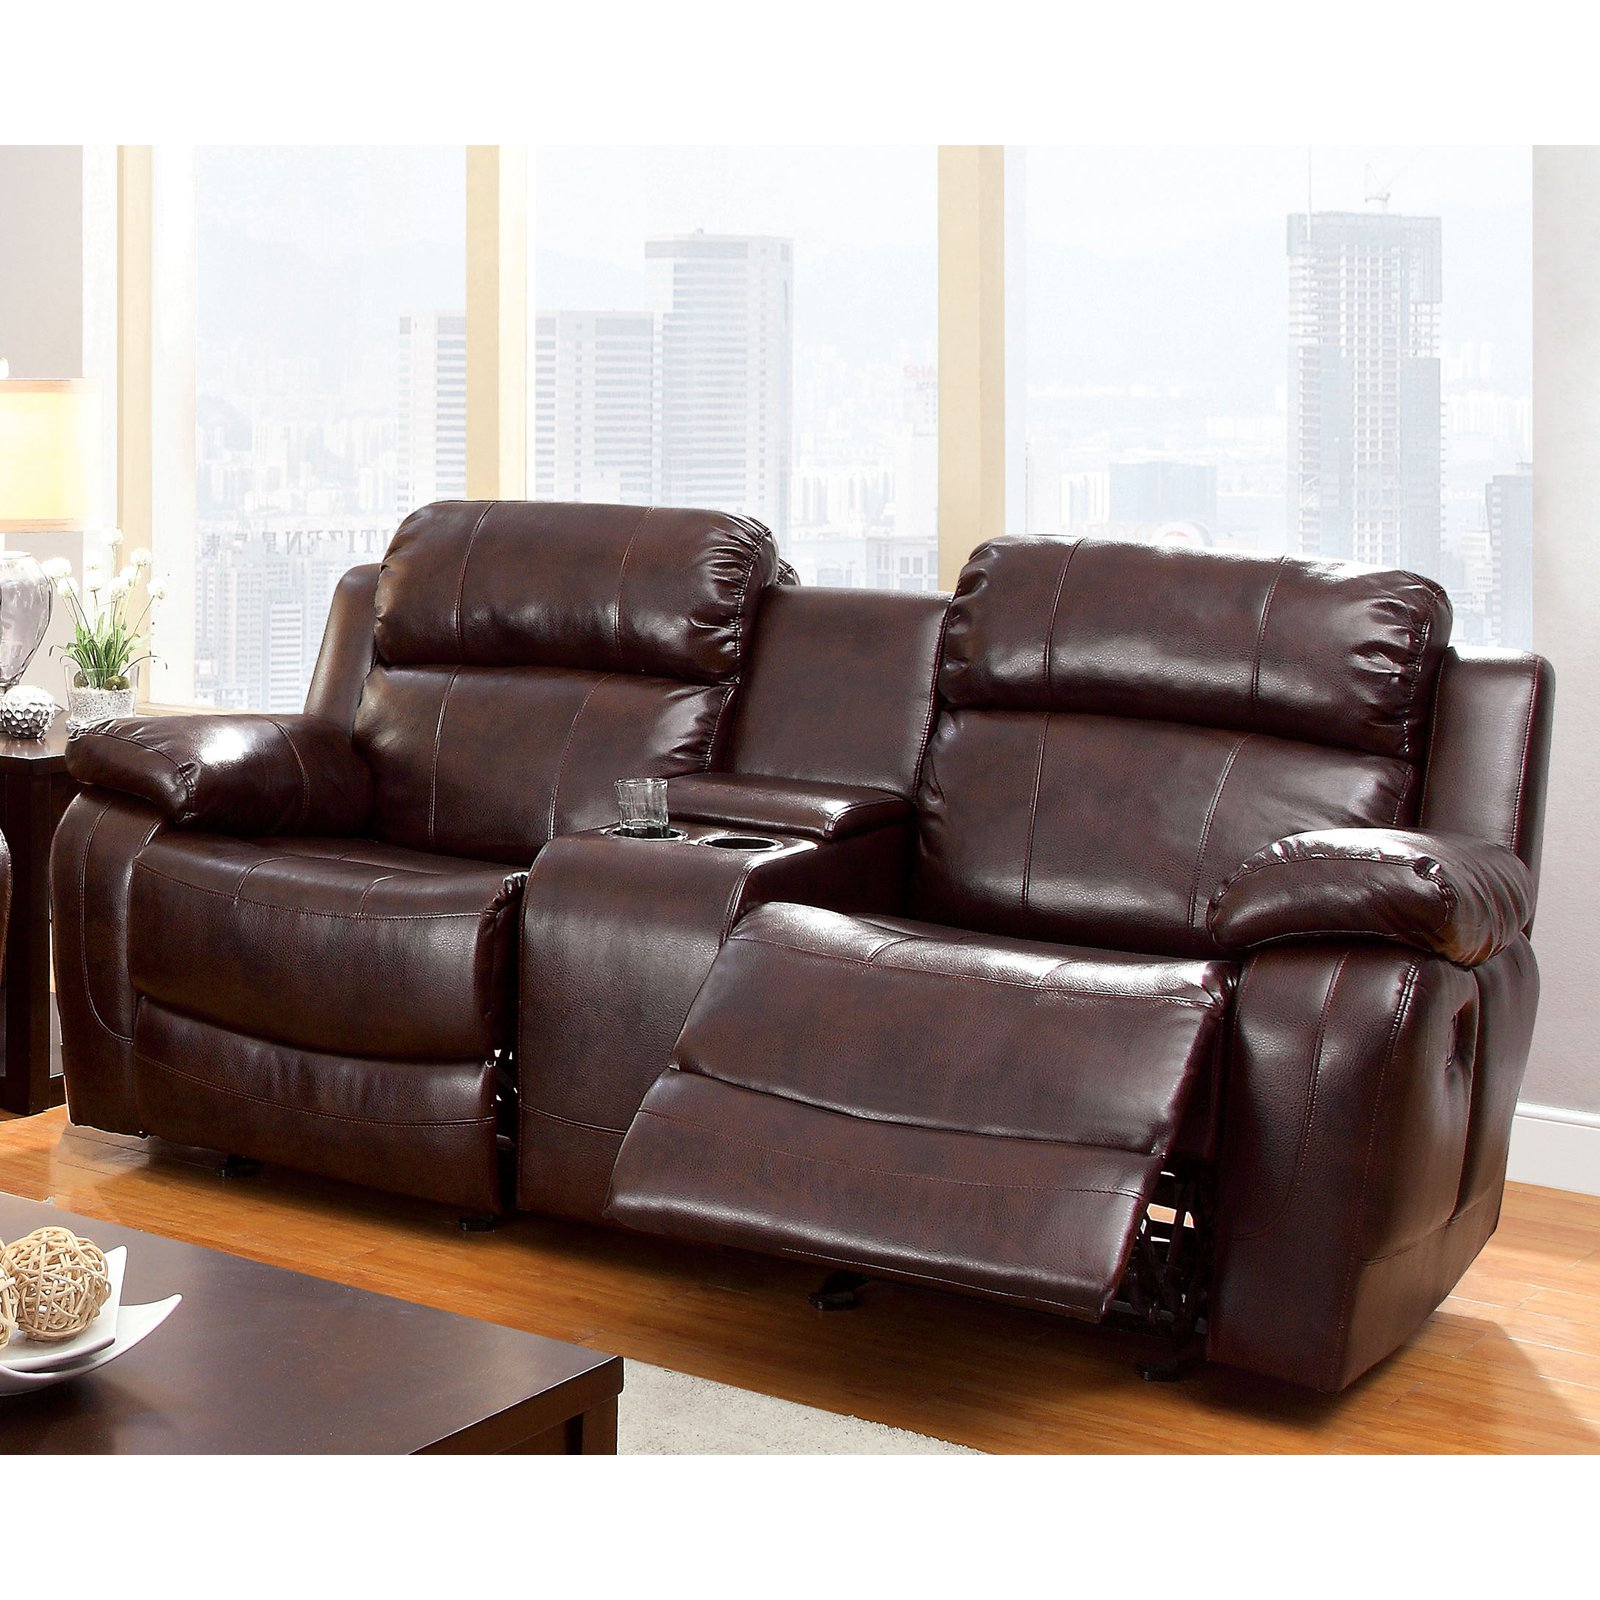 Furniture of America Hartwig Recliner Loveseat with Center Console